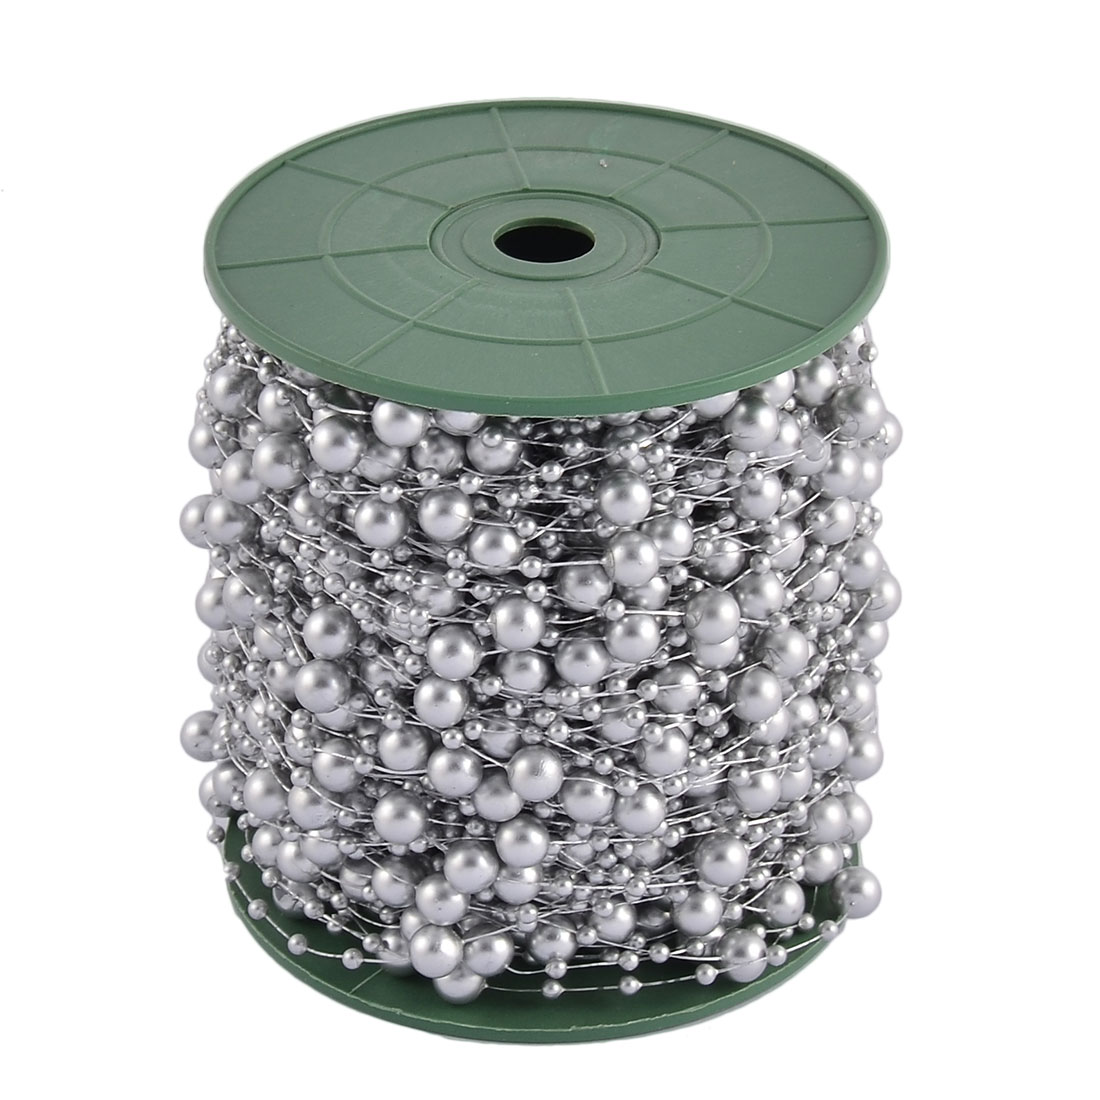 Festival Party Crafting DIY Garland Flower Table Decoration Imitation Pearl Beads String Roll Silver Tone